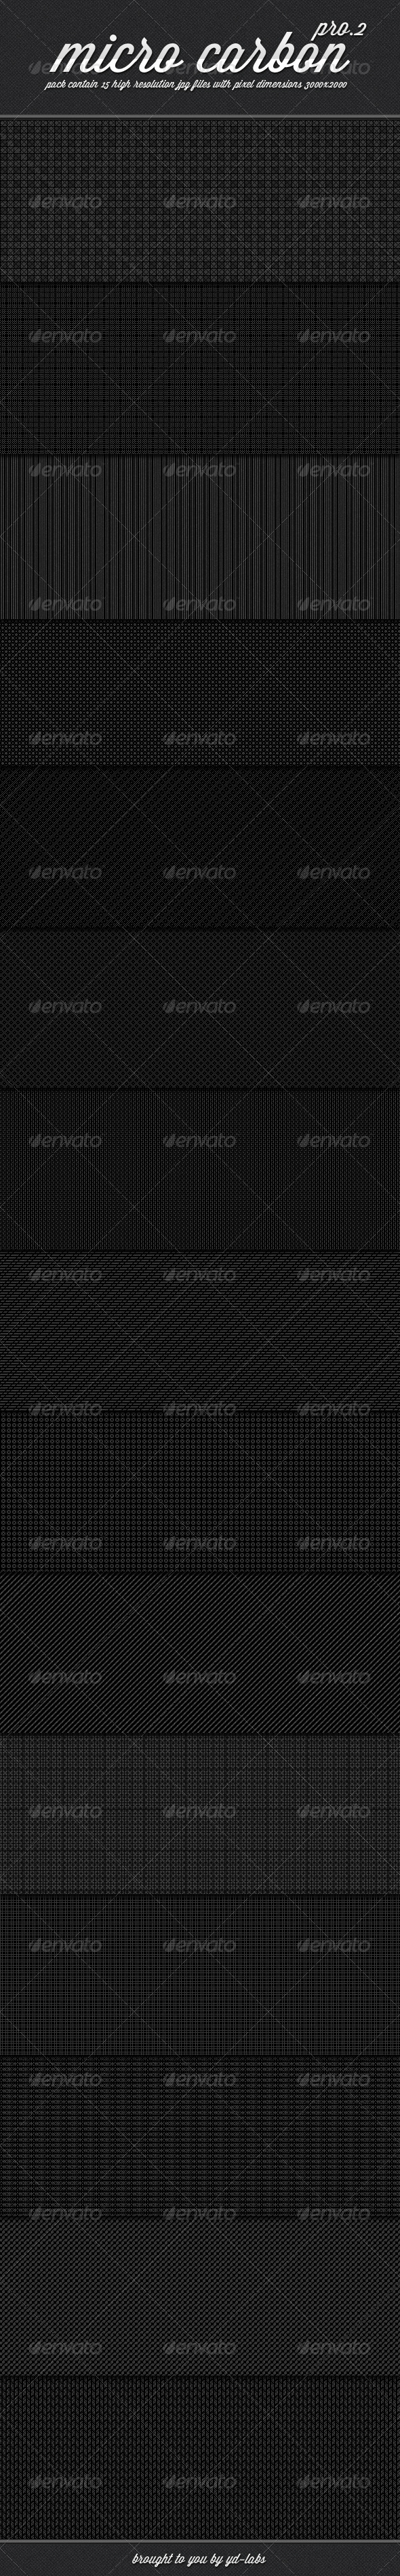 Micro Carbon Patterns Pro 2 - Patterns Backgrounds